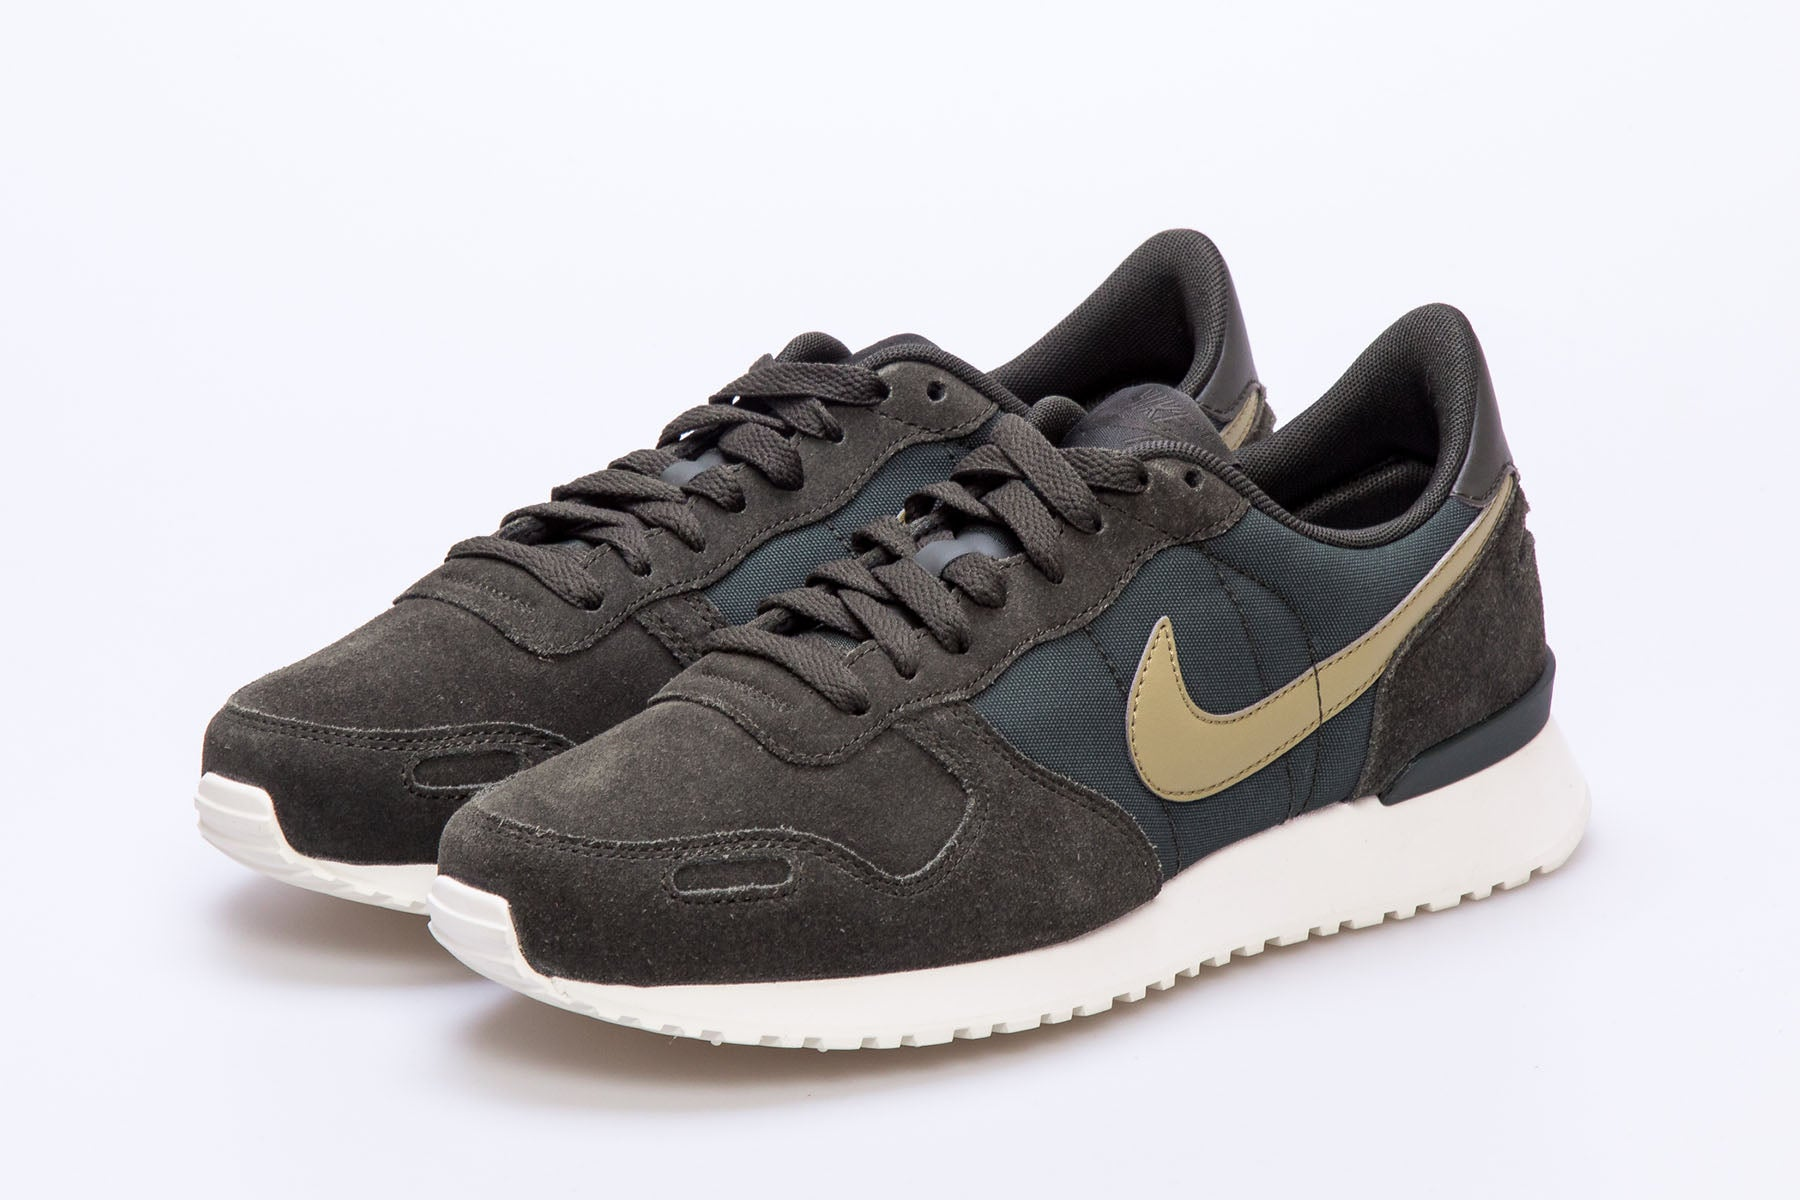 Nike Nike Air Vortex Leather - Edelvice Sneaker Muenchen